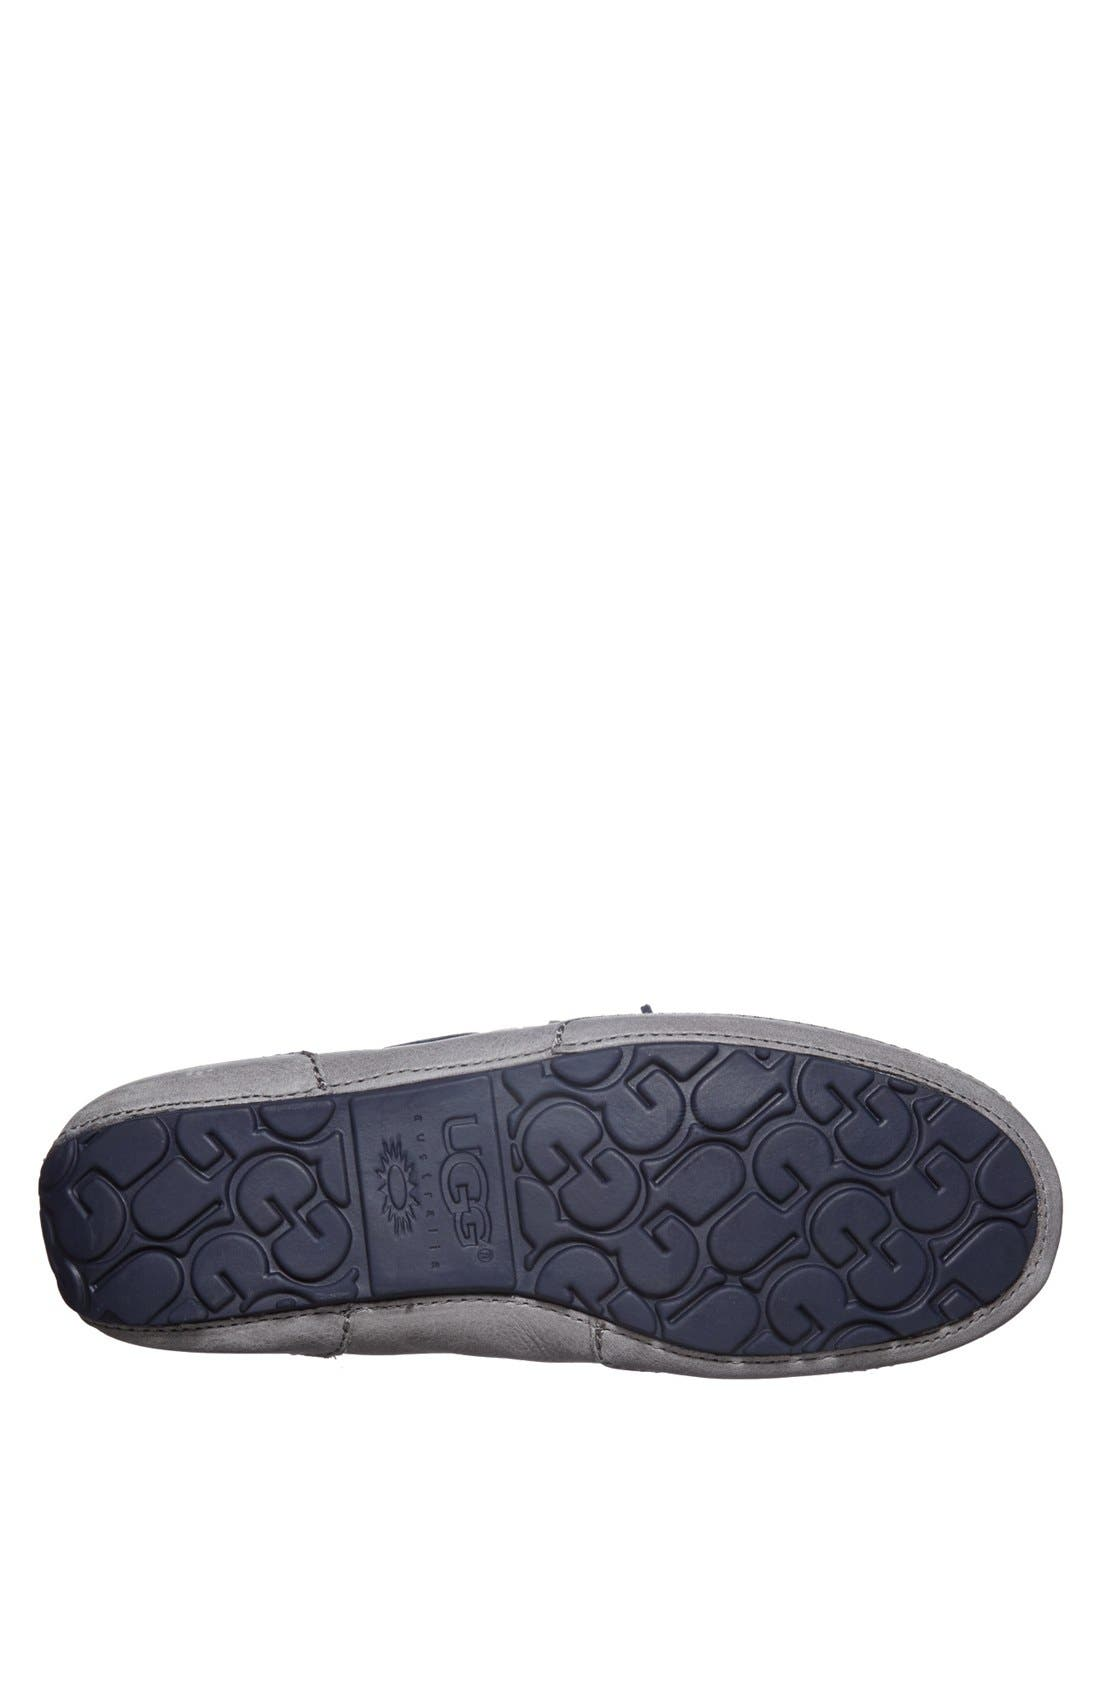 'Chester' Driving Loafer,                             Alternate thumbnail 11, color,